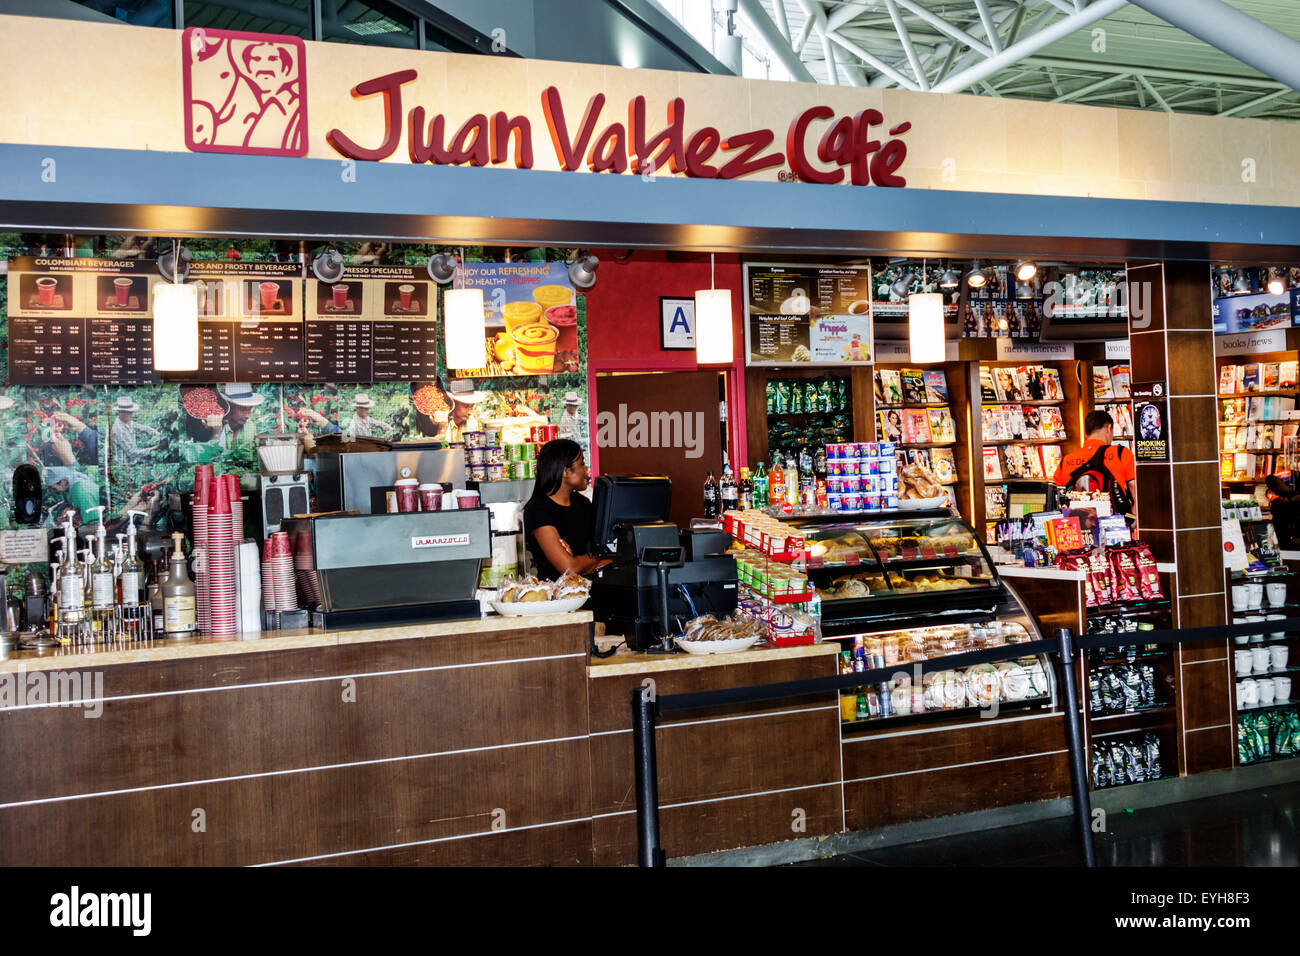 New York Queens John F  Kennedy International Airport JFK inside     New York Queens John F  Kennedy International Airport JFK inside interior  terminal concourse gate area Juan Valdez Cafe counter coffee